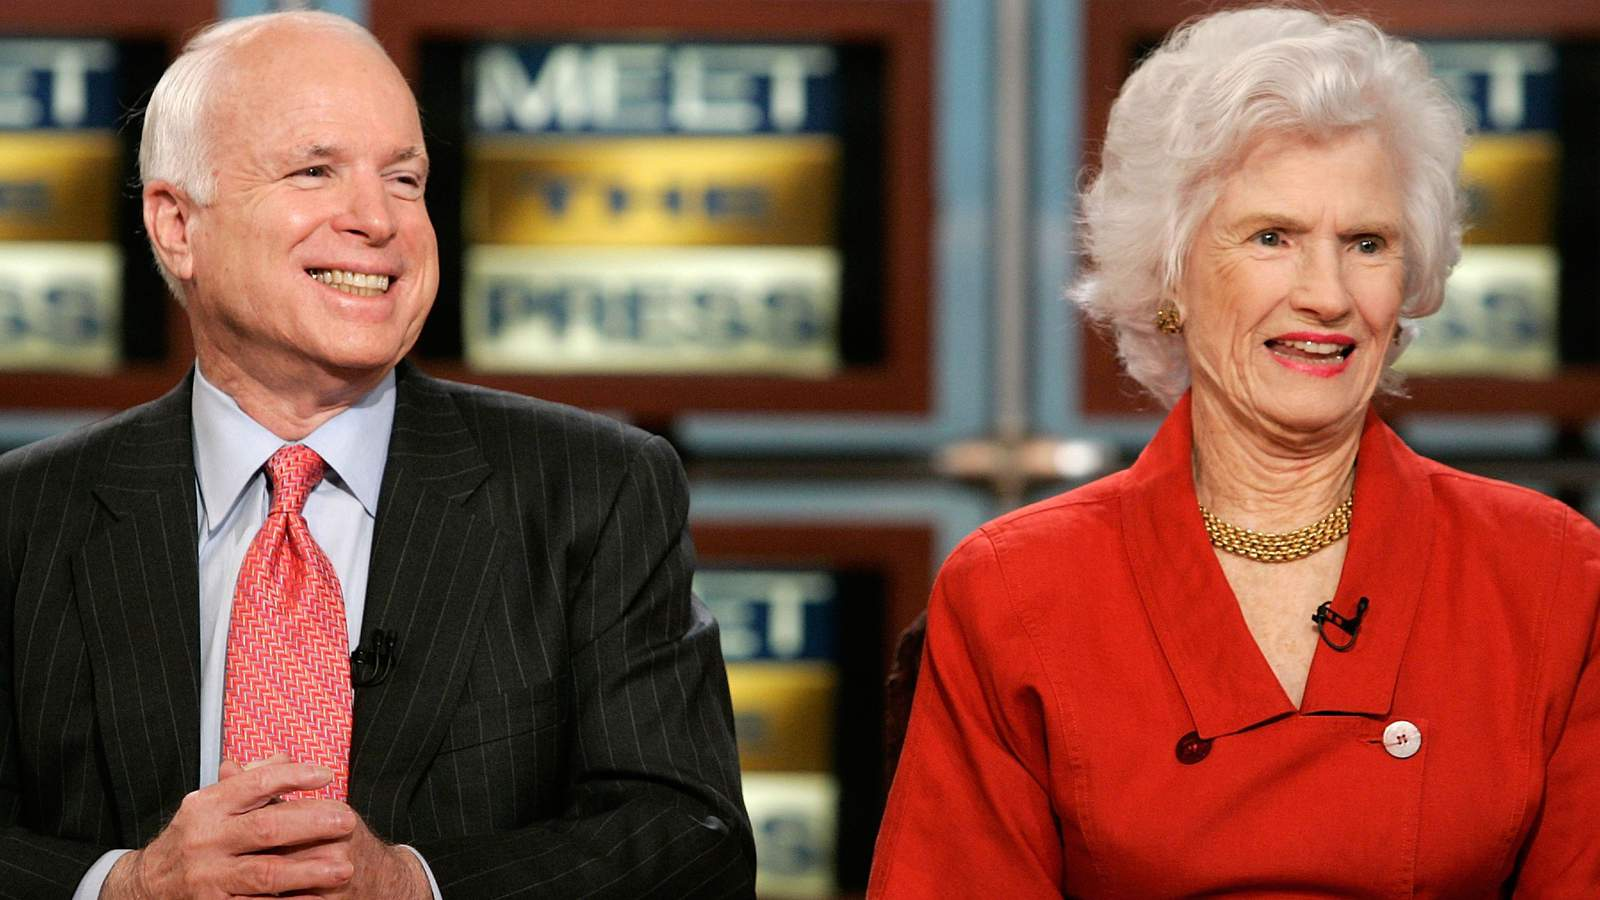 The mother of U.S. Sen. John McCain, whose feisty personality became her son's secret weapon during his 2008 presidential campaign, has died. Roberta Wright McCain was 108.